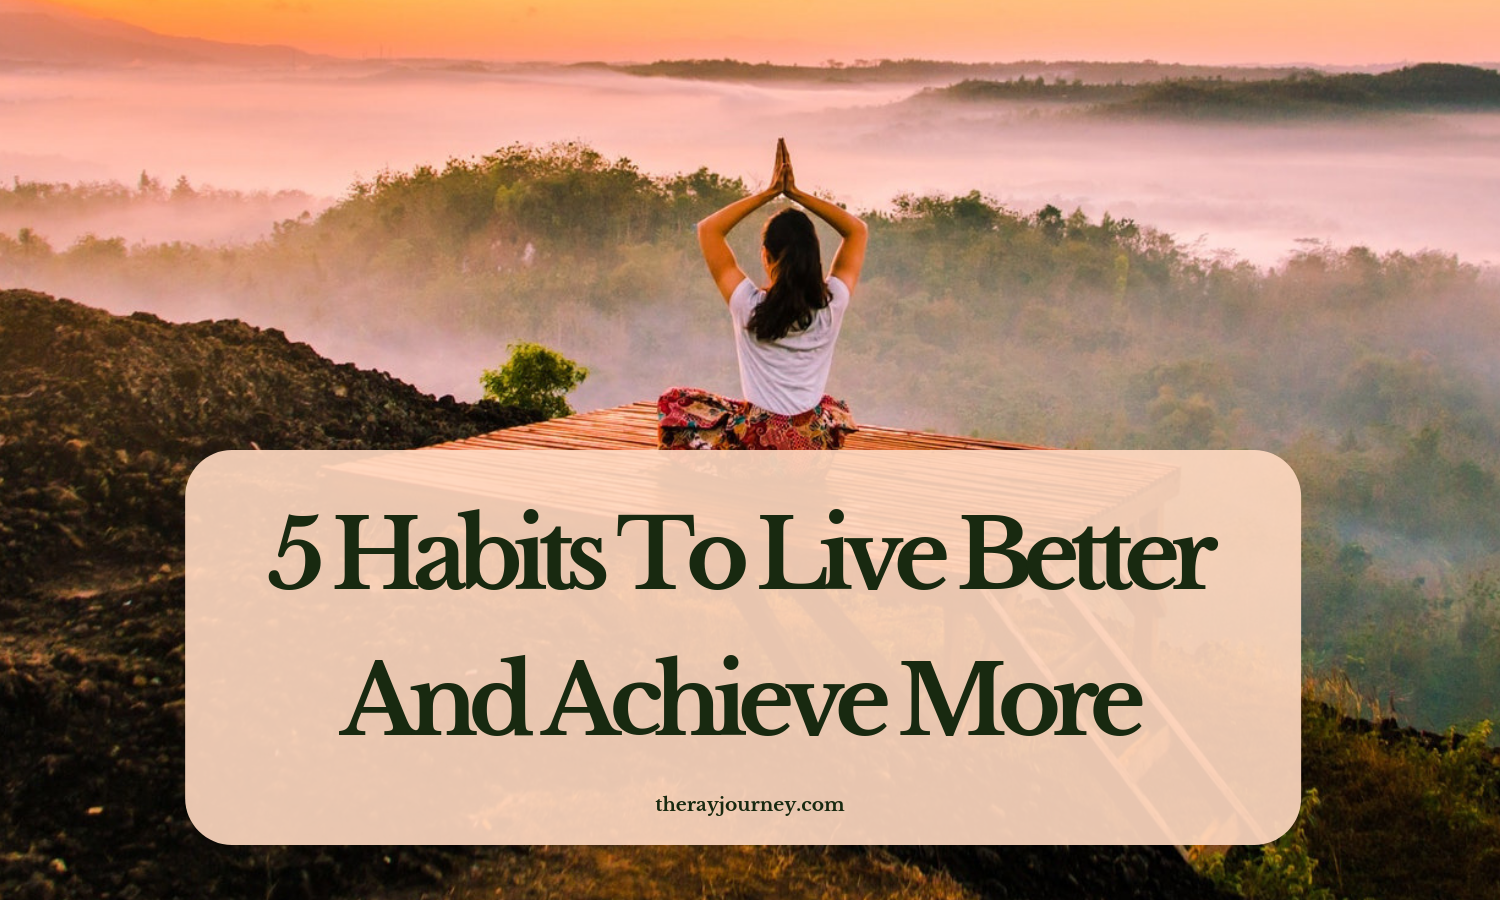 5 Habits To Live Better And Achieve More